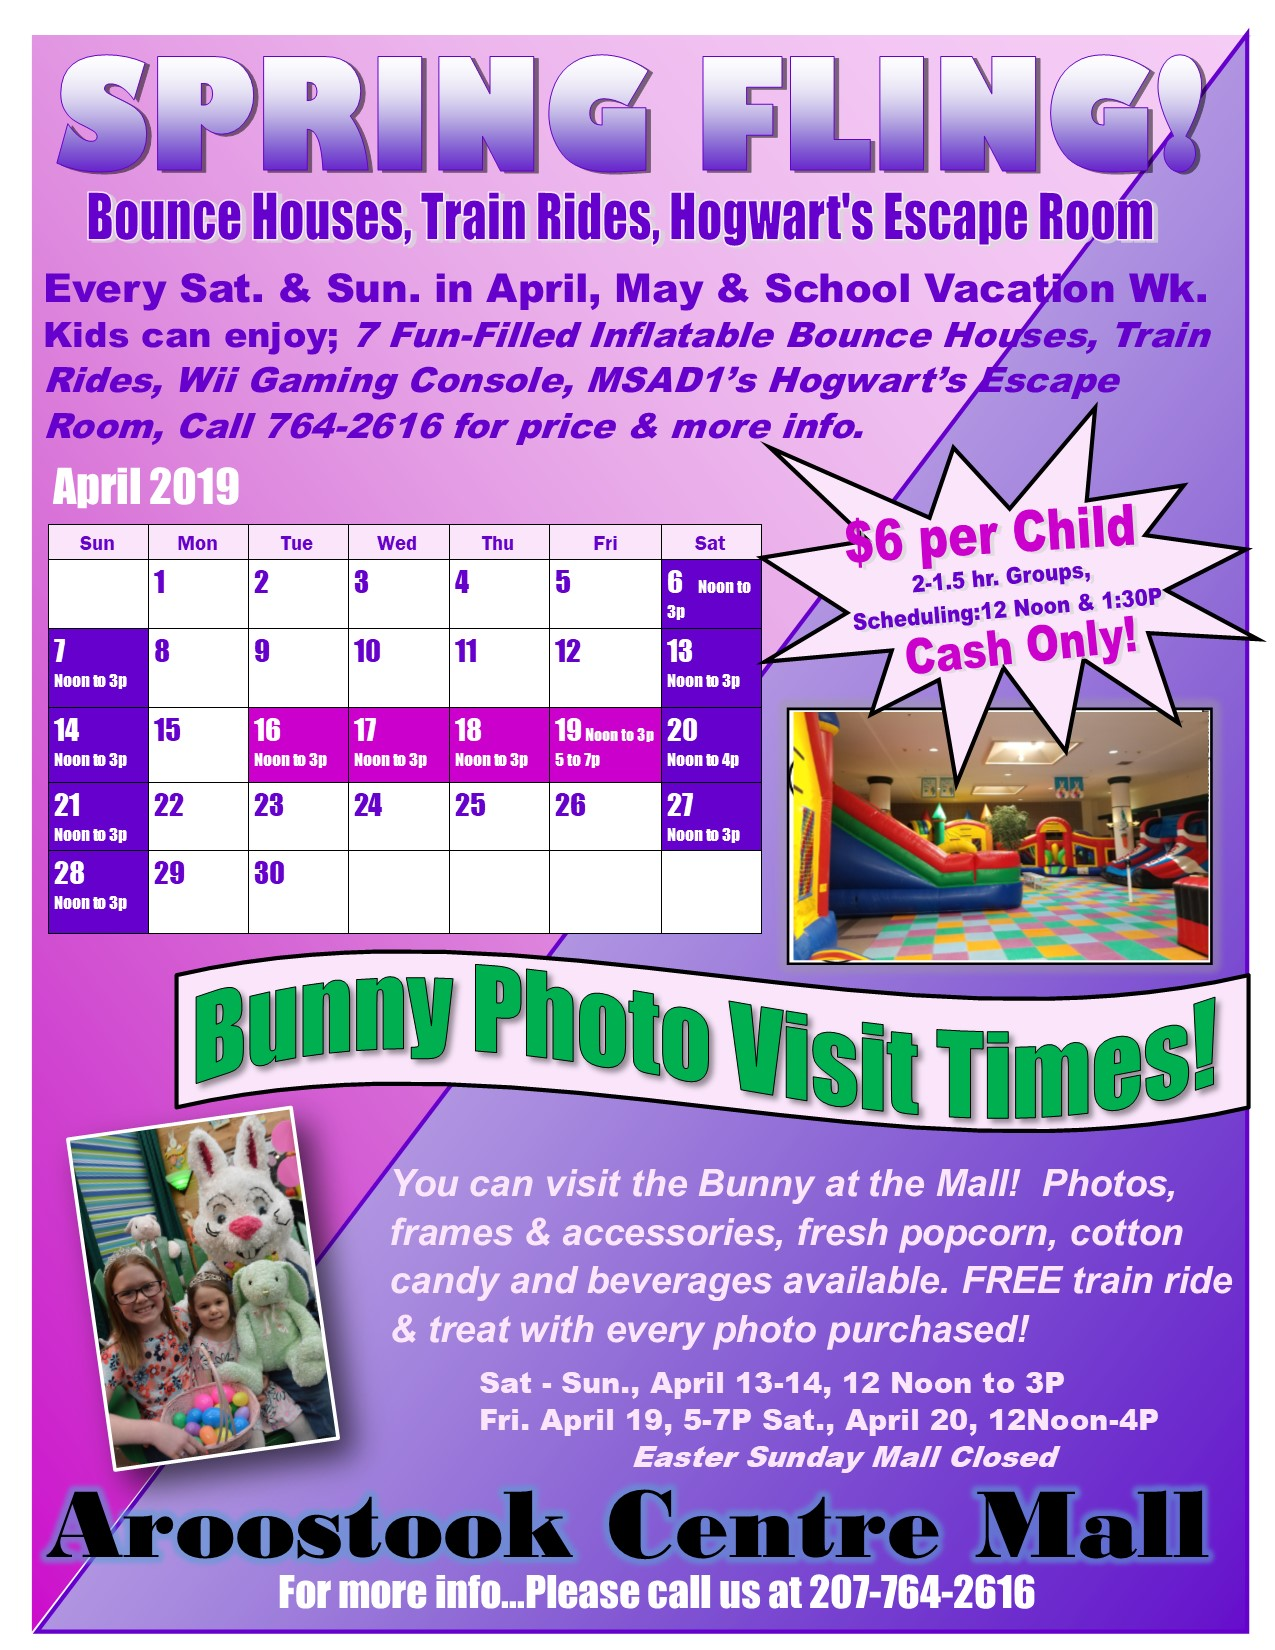 Aroostook Centre Mall information for Spring Fling with picture of a Bunny and Bounce House